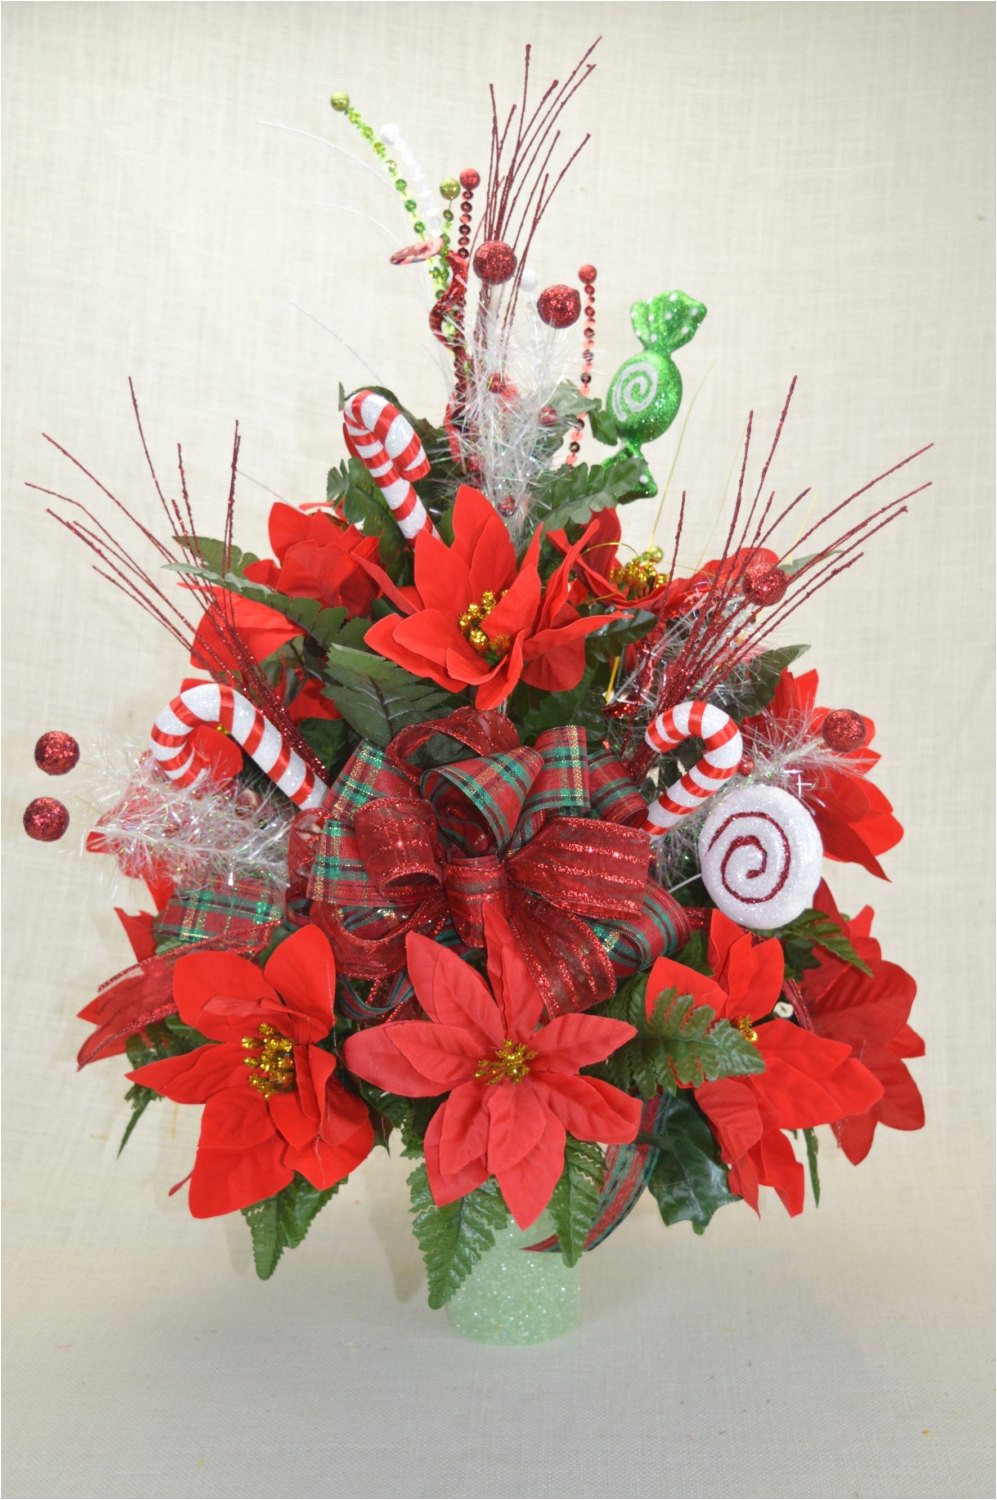 Cut Out Vase Of Cemetery Christmas Decoration Ideas Vases tombstone foreversafe within Cemetery Christmas Decoration Ideas Vases tombstone foreversafe Cemetery Vase Product Informationi 0d